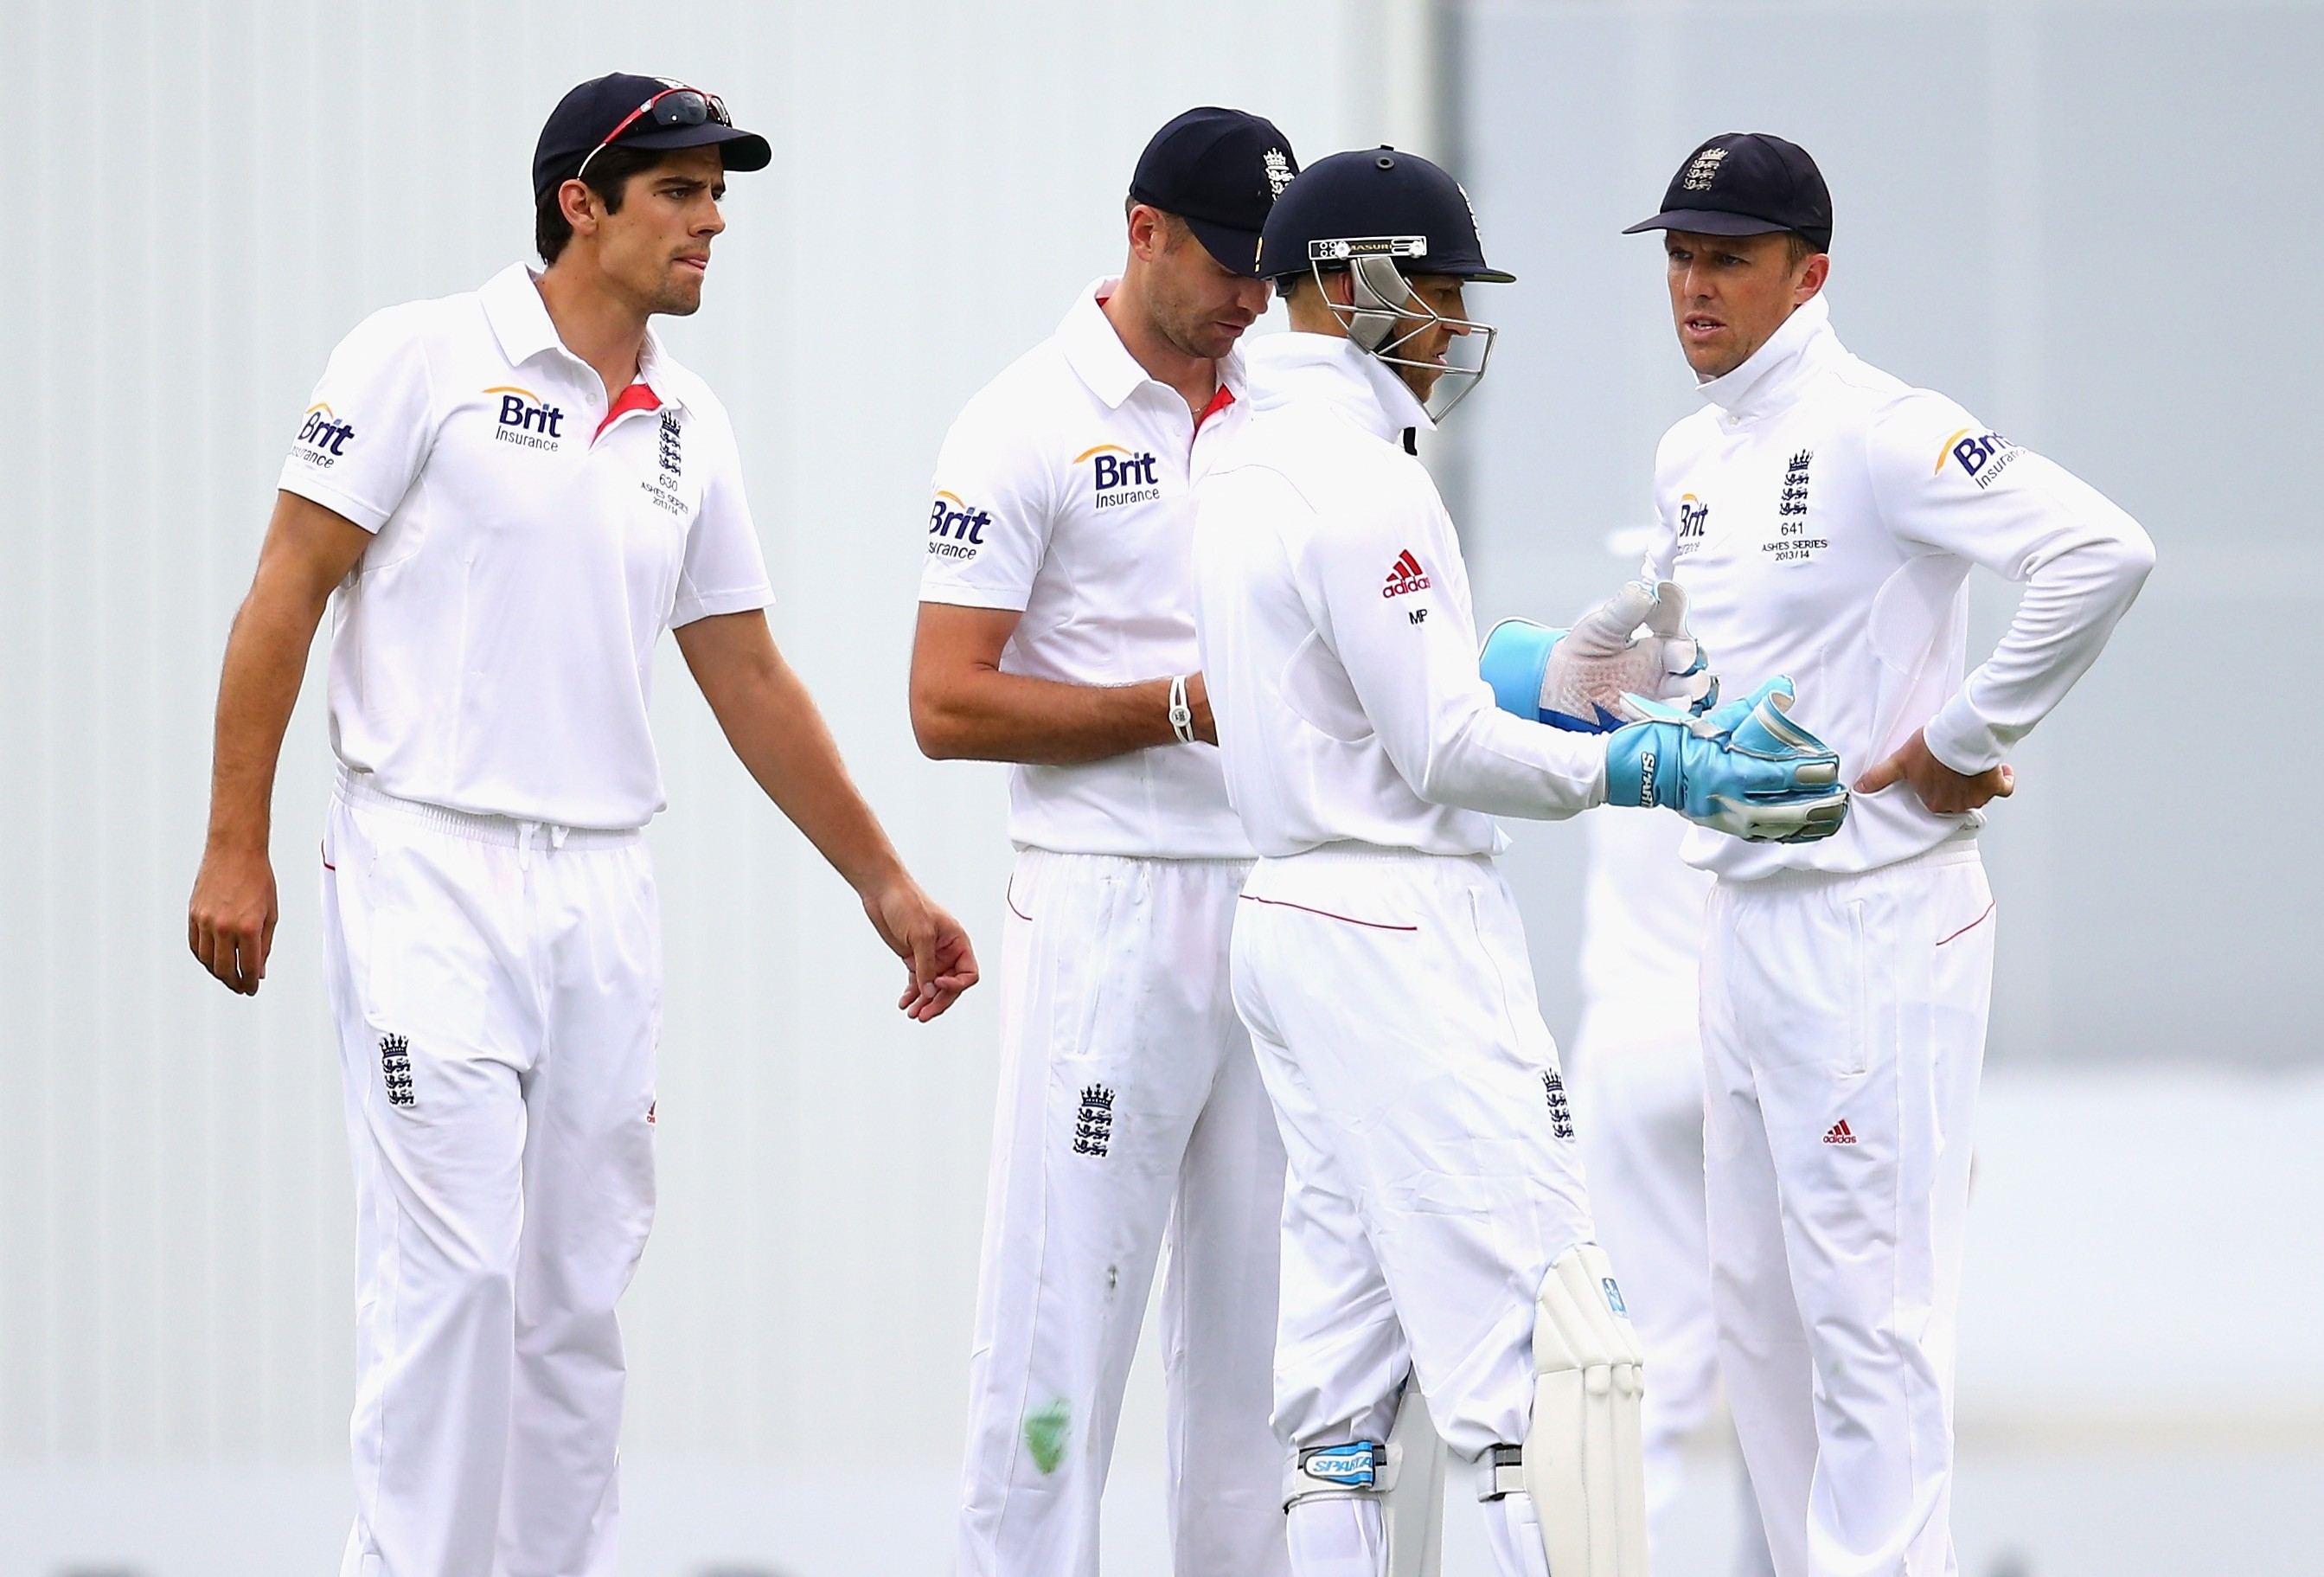 Ashes 2013-14: England face defeat in first Test after shocking batting collapse